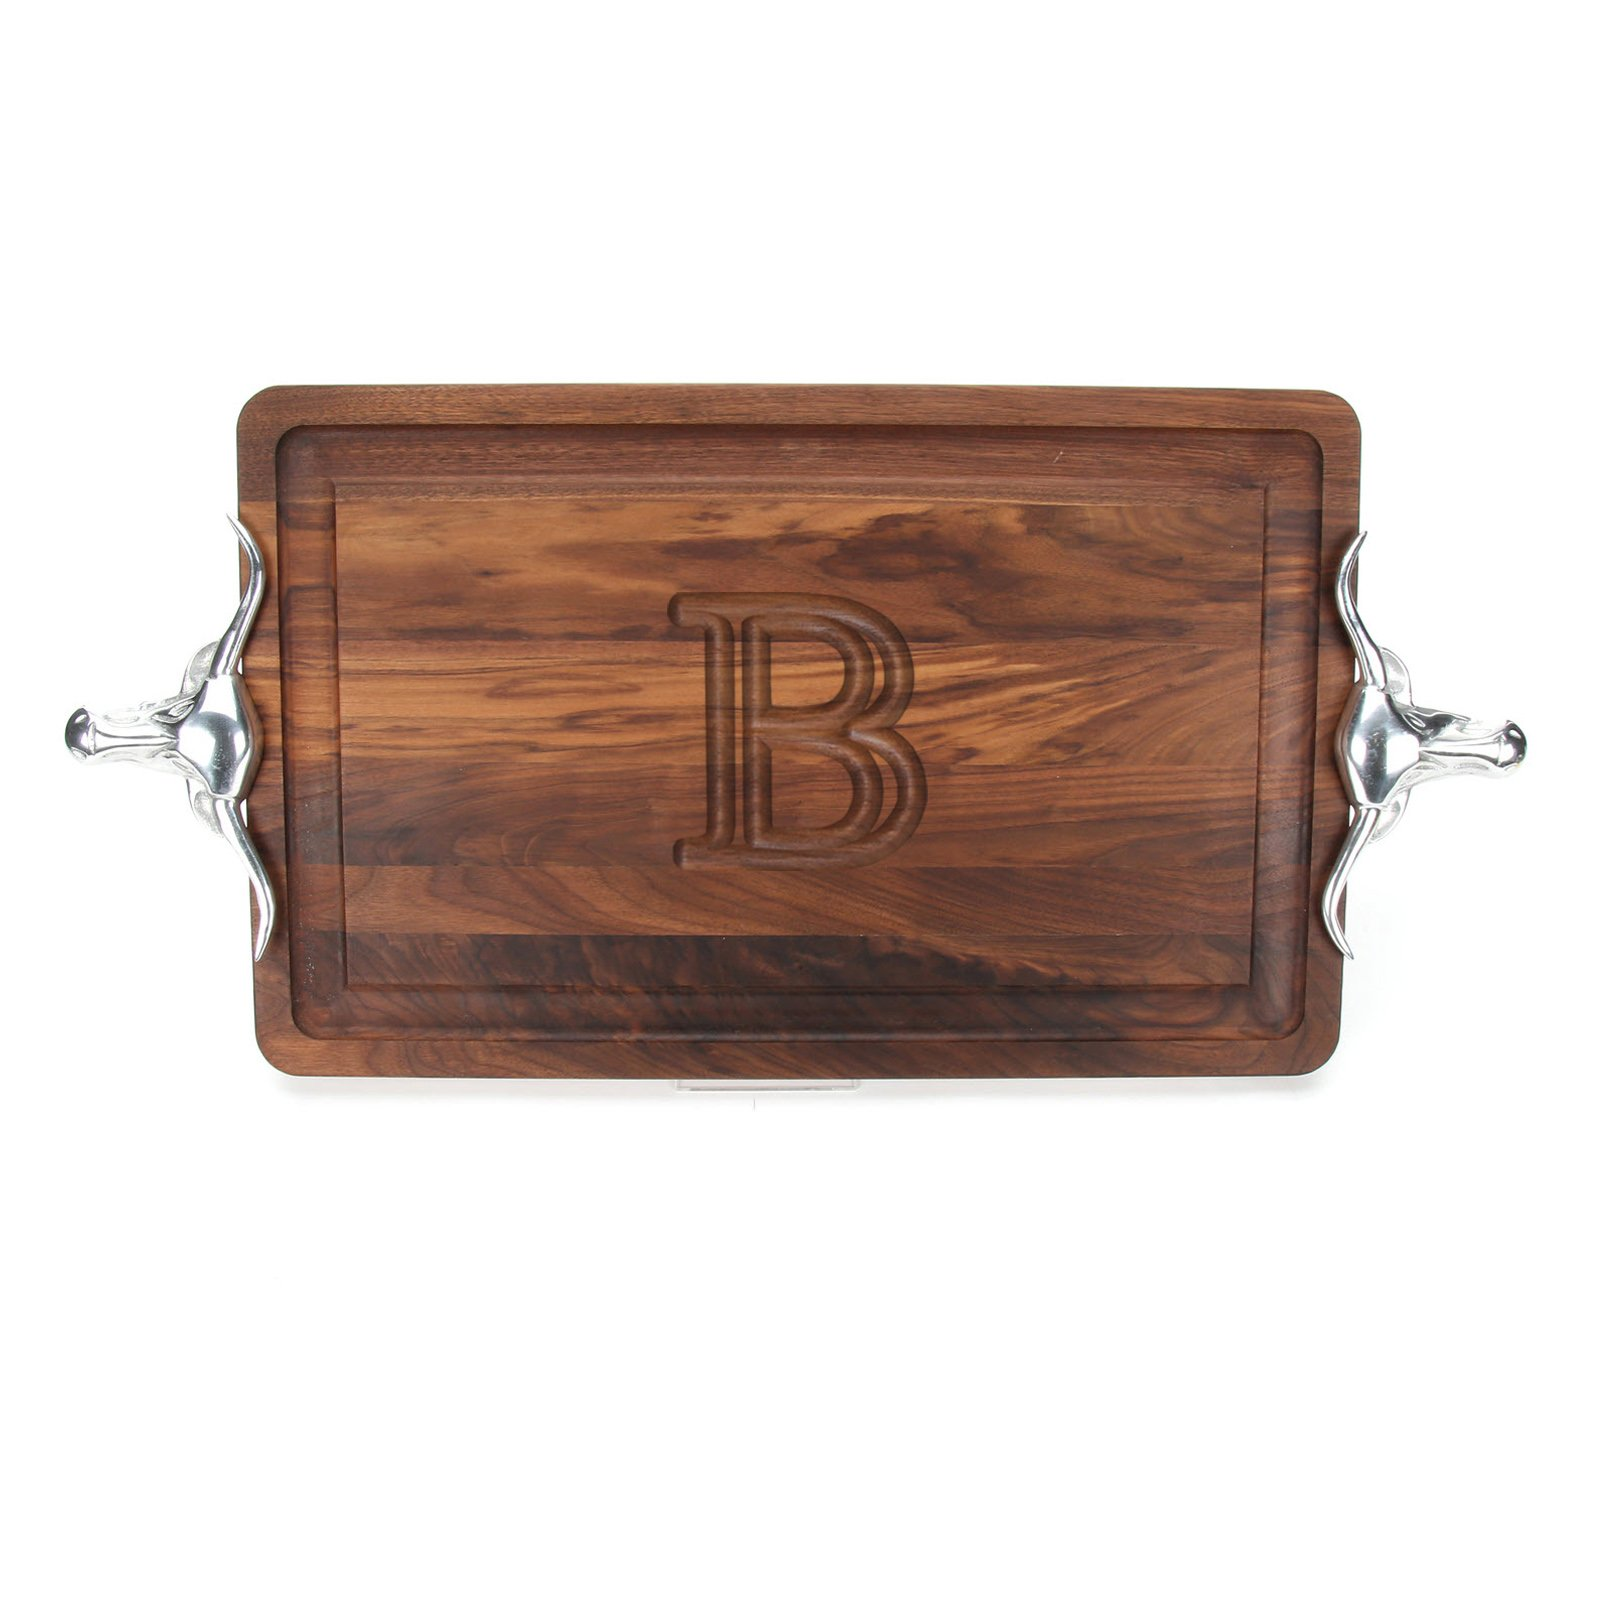 BigWood Boards W220-LLH-B Thick Carving Board with Large Longhorn Handle in Cast Aluminum, 15-Inch by 24-Inch by 1.25-Inch, Monogrammed''B'', Walnut